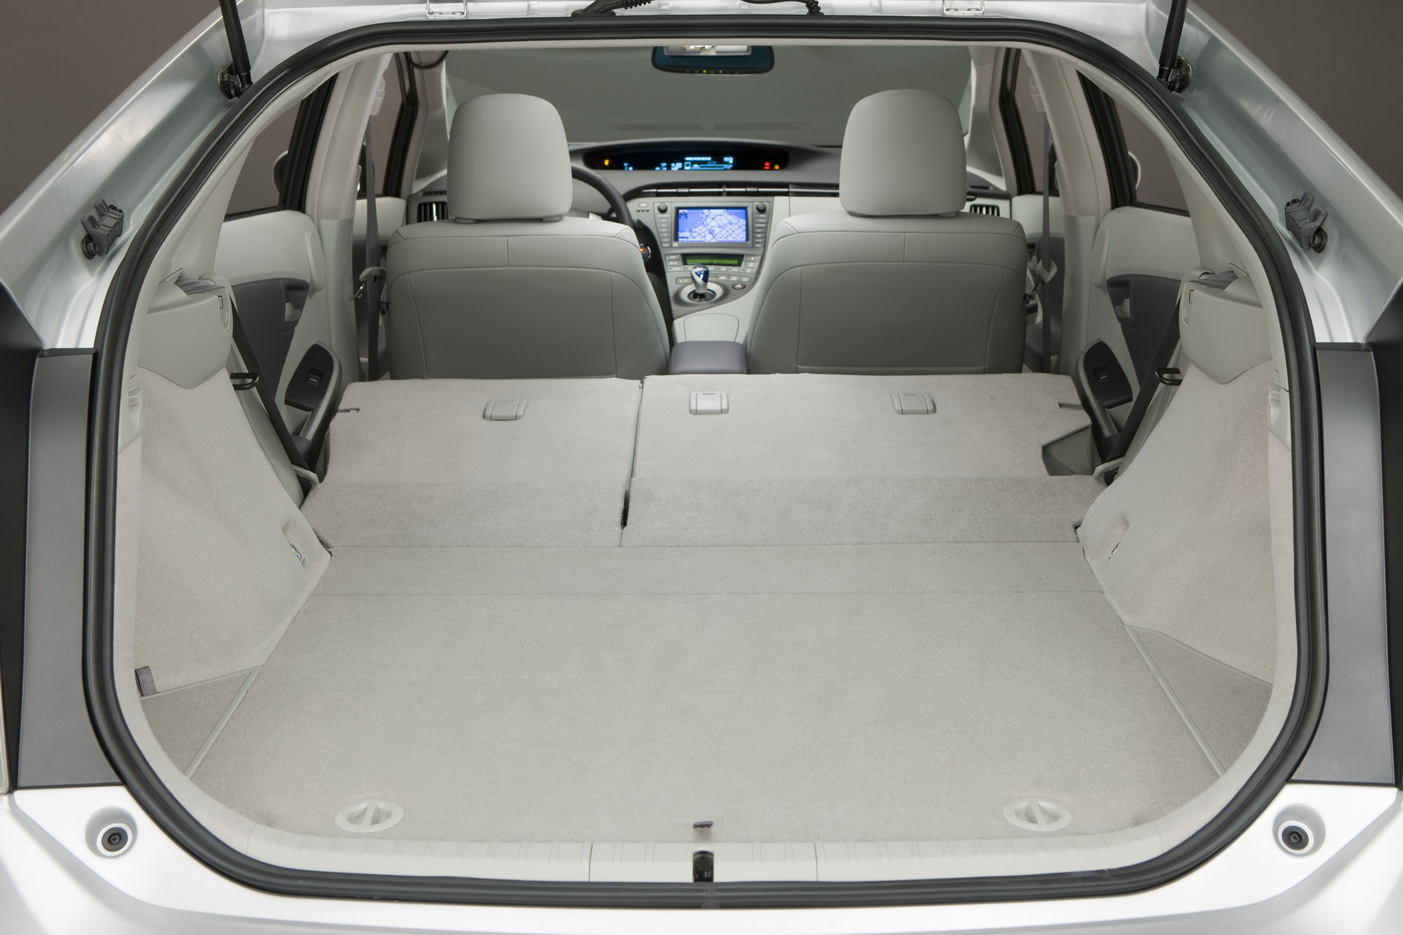 Toyota Prius 2015 Interior Boot/Trunk